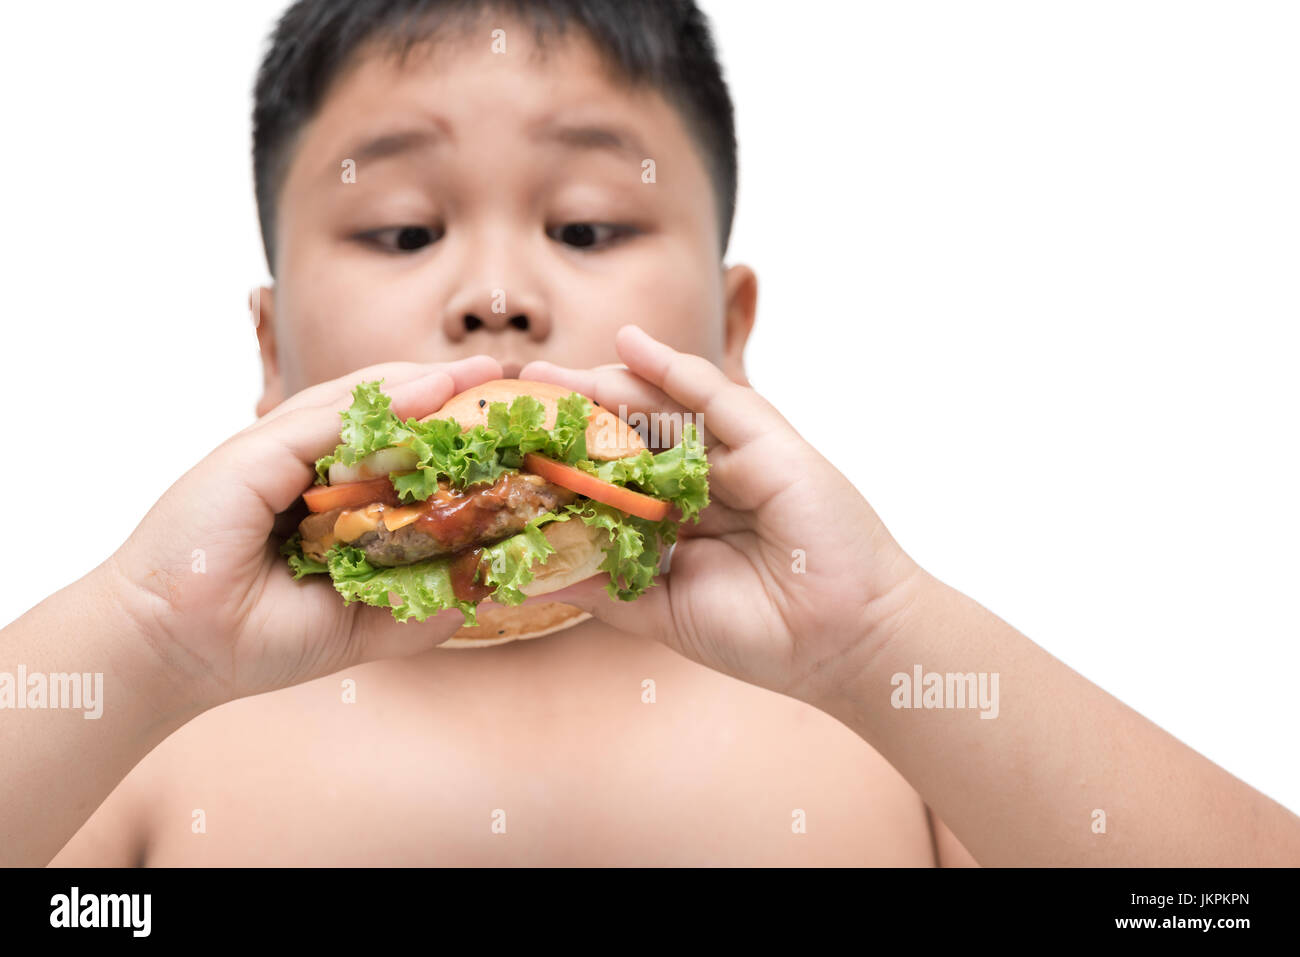 pork hamburger on obese fat boy hand background isolated on white, unhealthy food, junk food or fast food - Stock Image